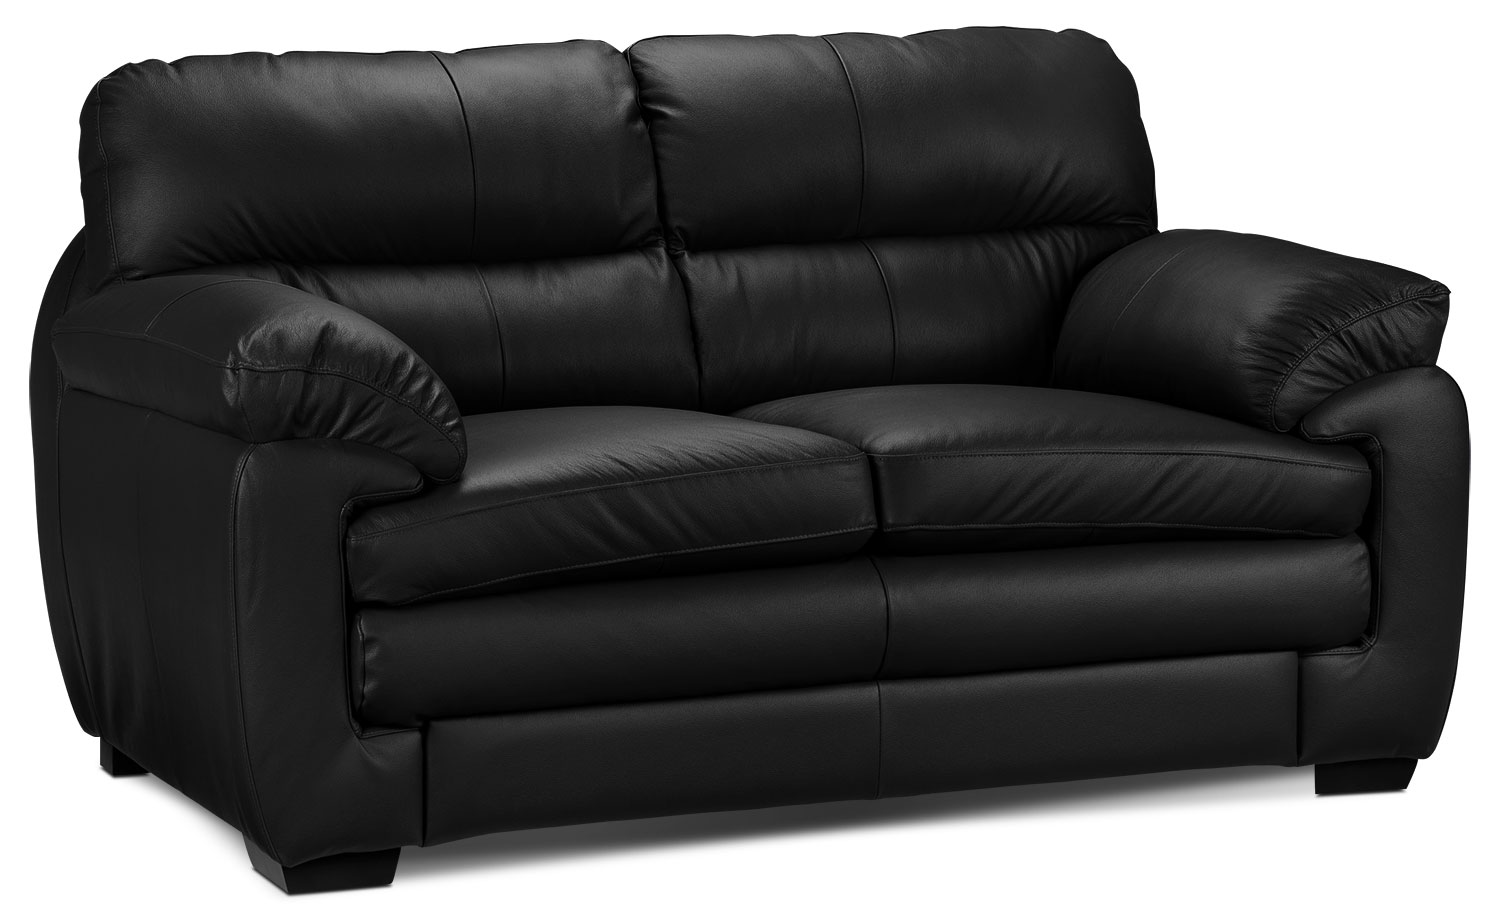 Cambria Loveseat - Black